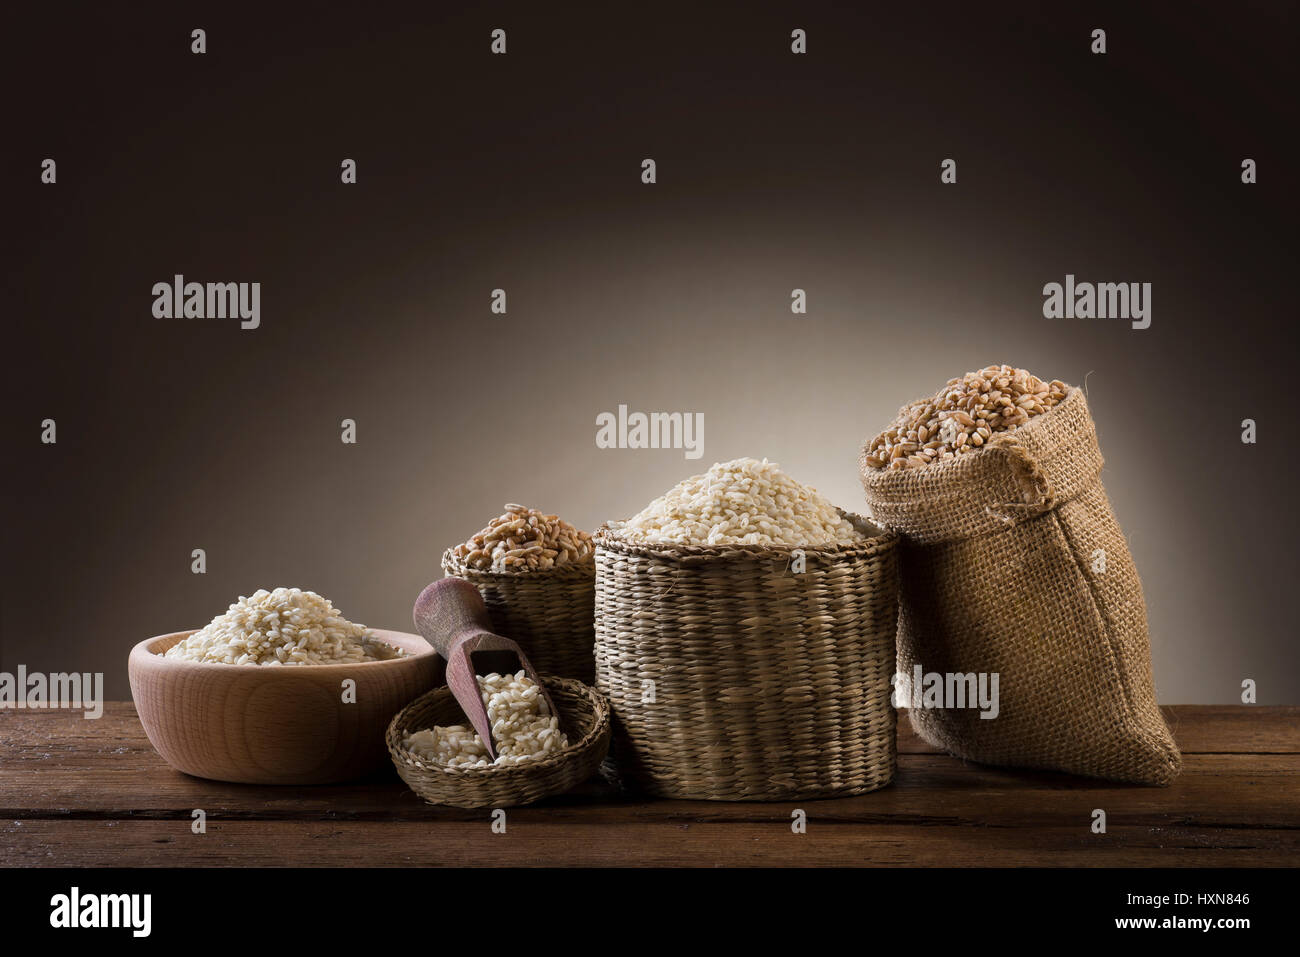 variety of different rice in rustic bowl and bags on wooden table - Stock Image